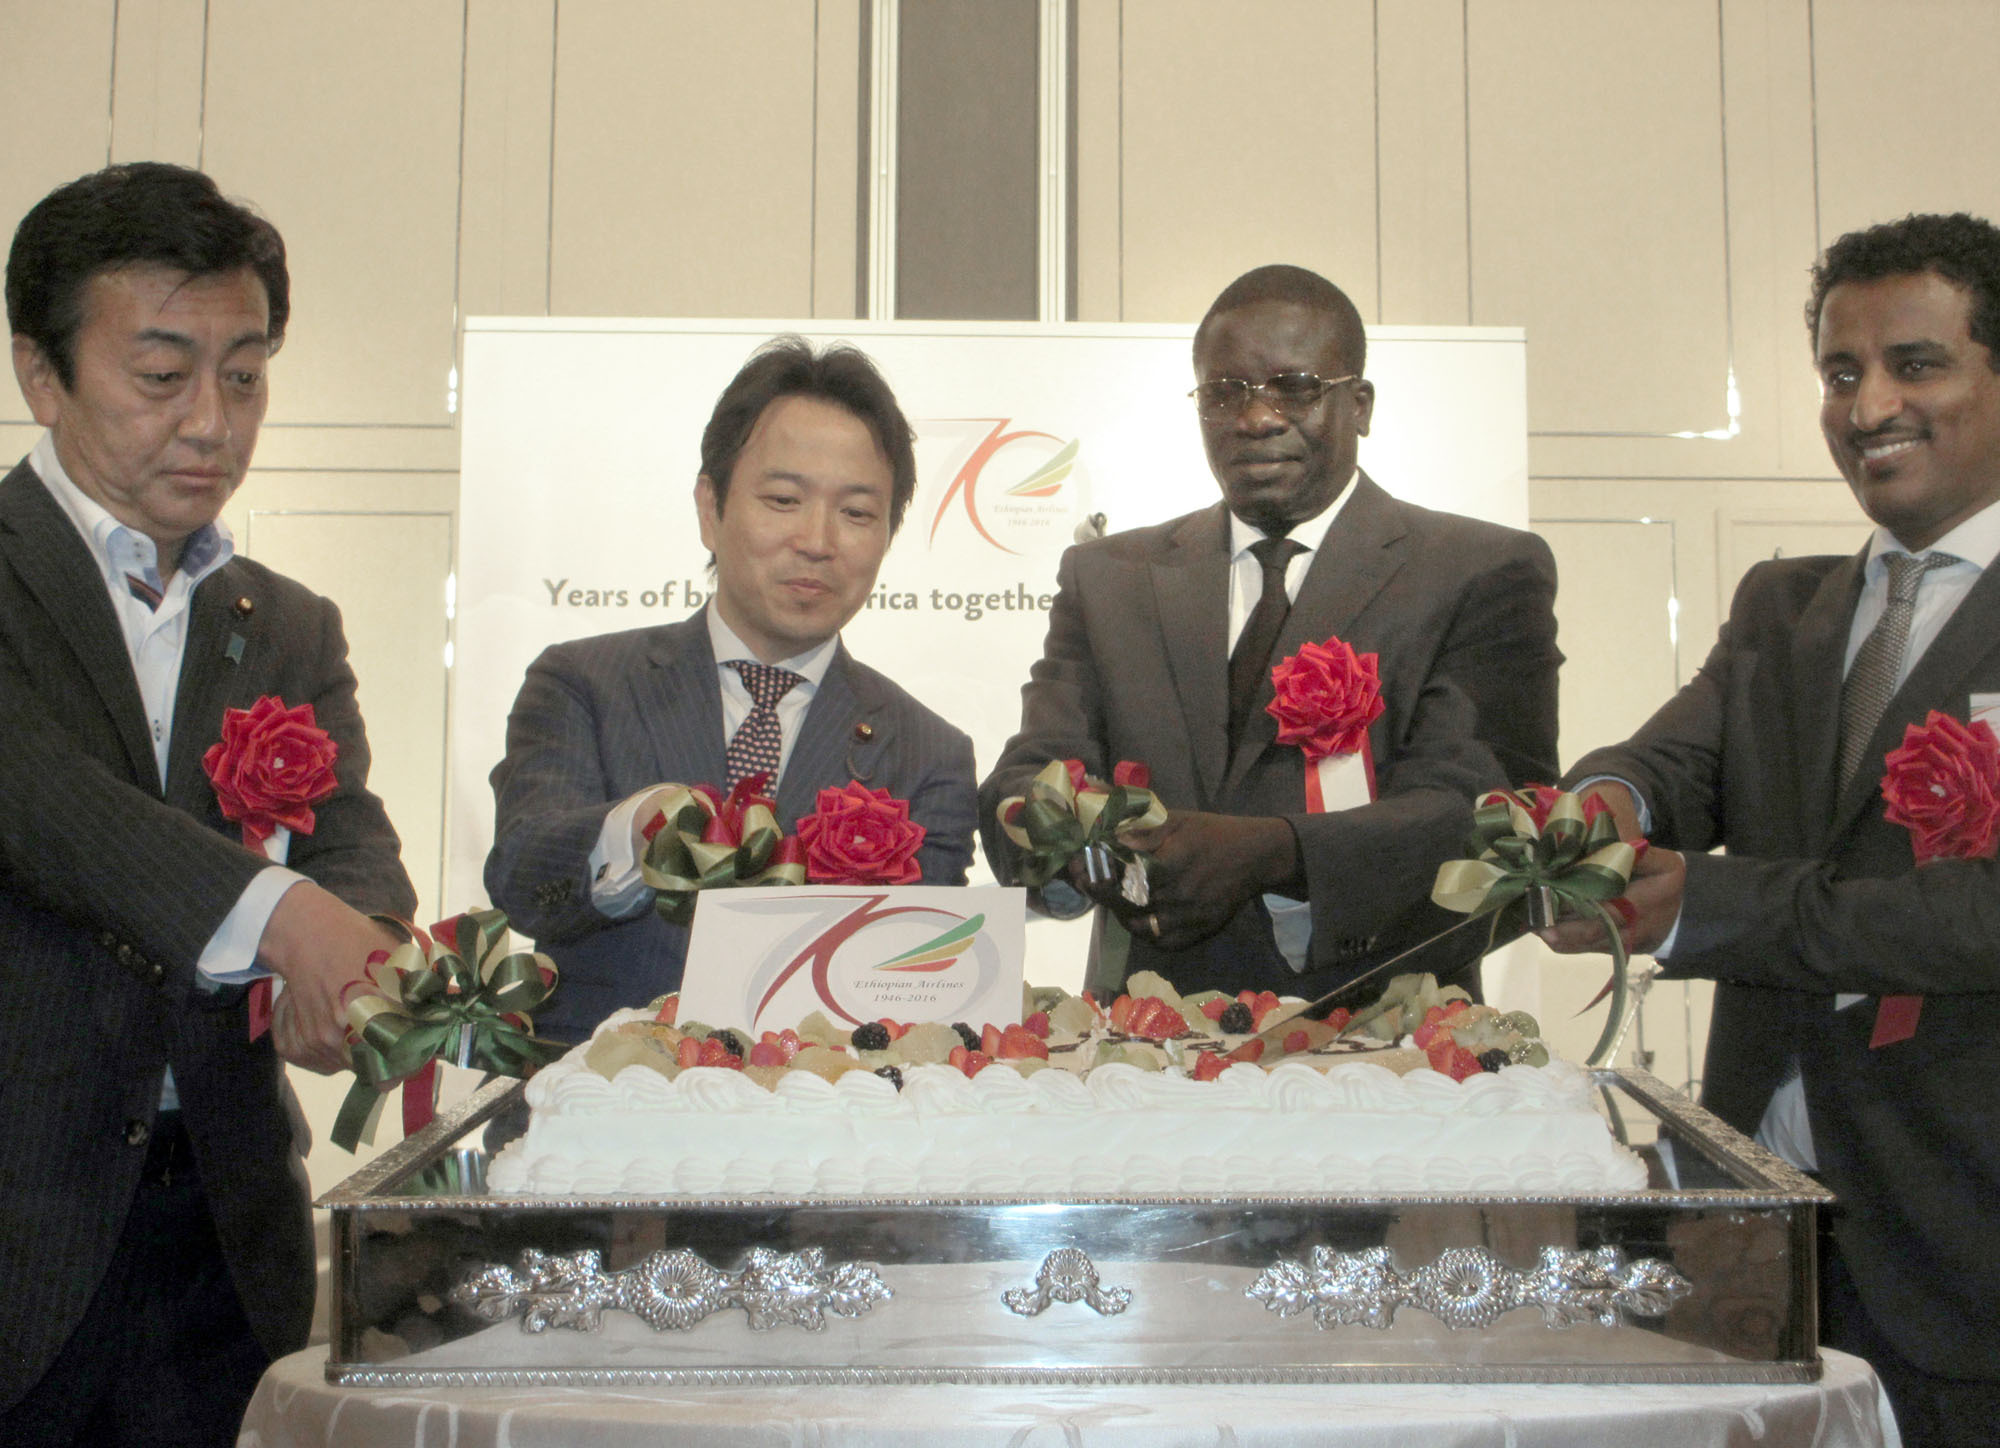 Ethiopian Ambassador Cham Ugala Uriat (second from right) joins, from left, Parliamentary Vice-Minister of Economy, Trade and Industry Tsuyoshi Hoshino; Parliamentary Vice-Minister for Foreign Affairs Masakazu Hamachi; and Ashenafi Yirga, Japan area manager for Ethiopian Airlines, during a cake-cutting ceremony to celebrate the 25th Anniversary of Ethiopian National Day and the 70th Anniversary of Ethiopian Airlines at the Marriott Hotel on May 30. | HIROKO INOUE